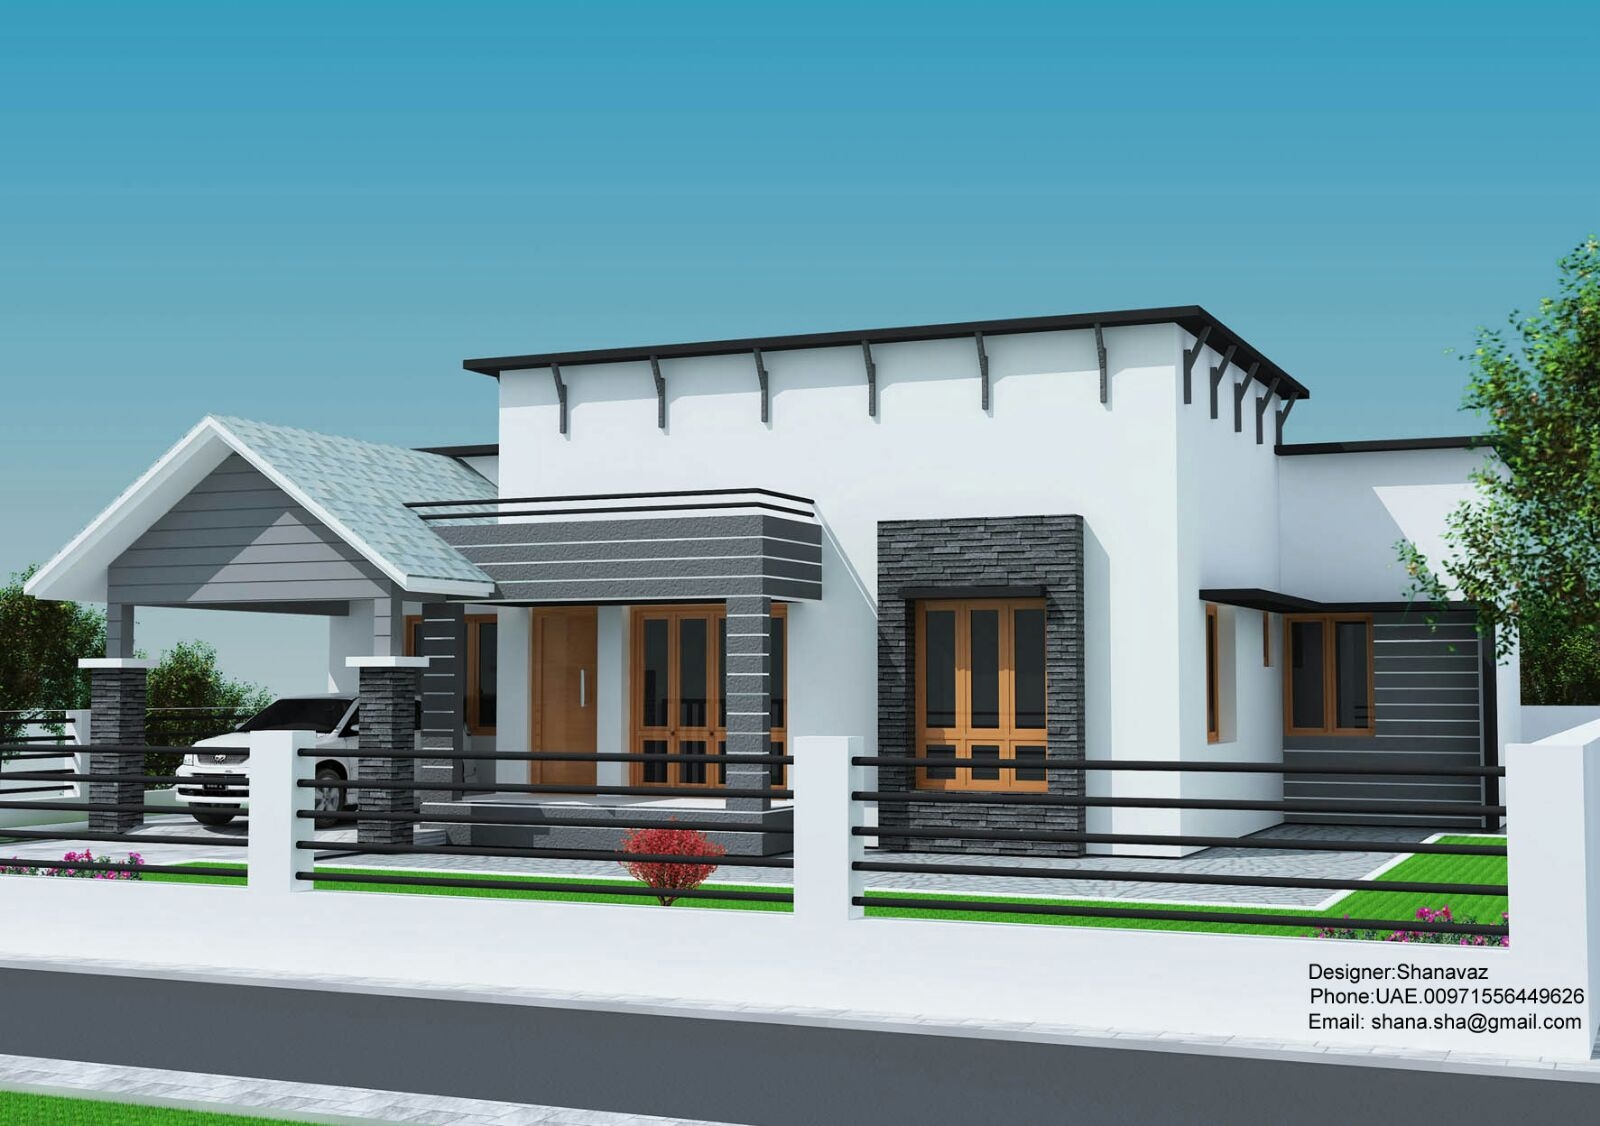 Small plot 3 bedroom single floor house in kerala with for Kerala house plans with photos free